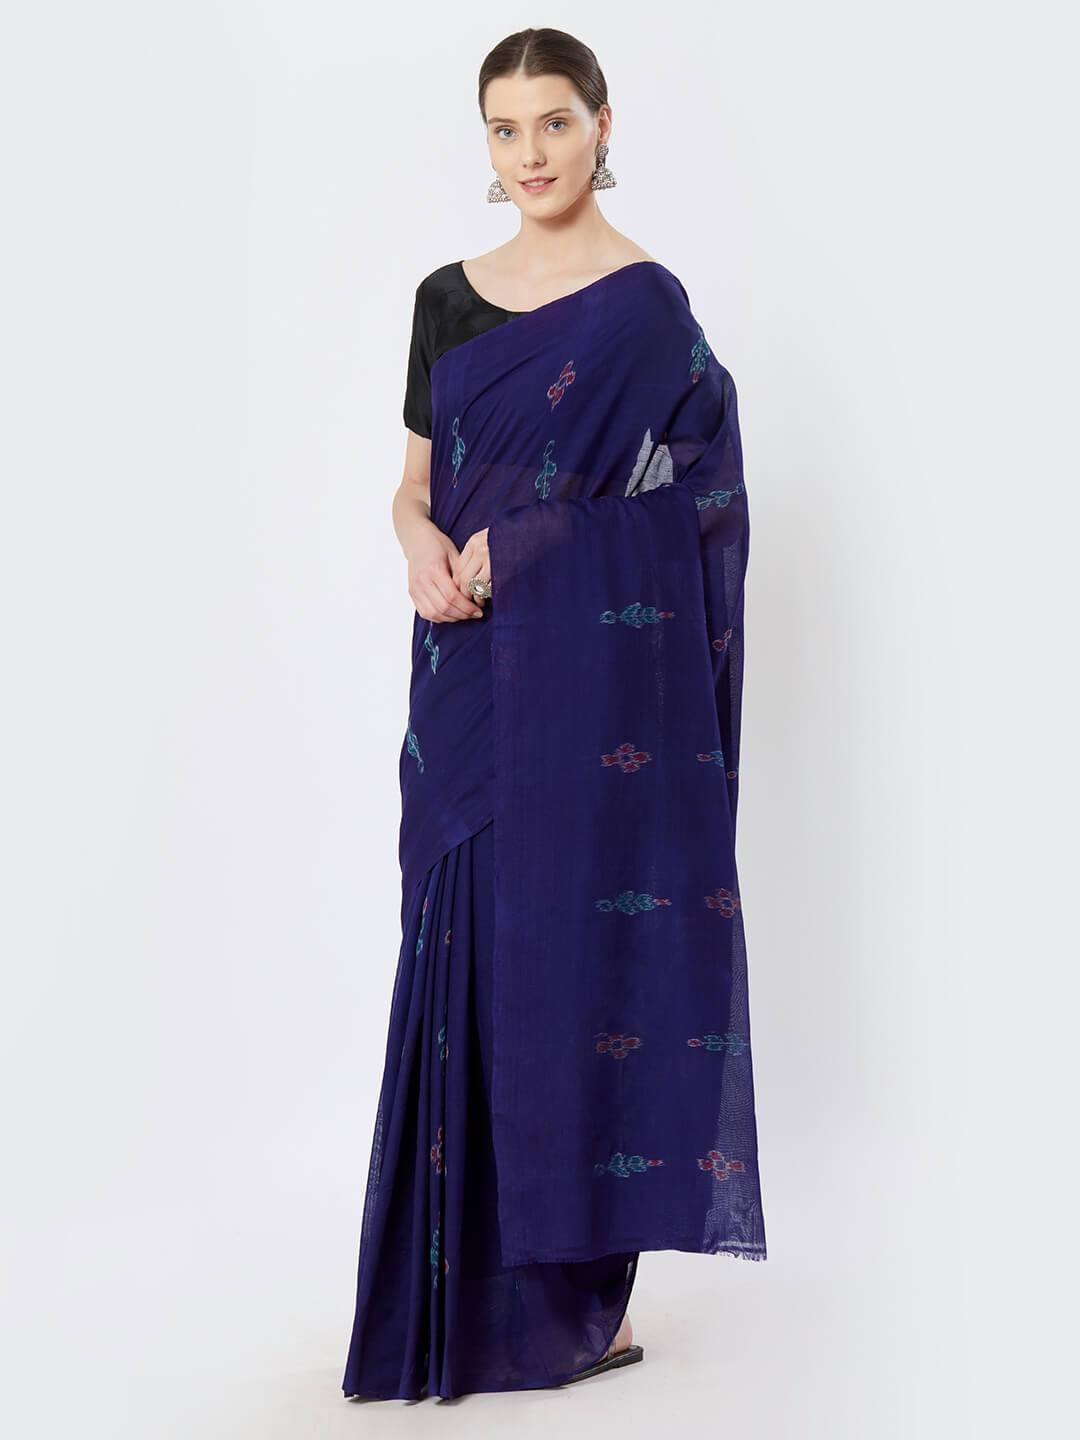 CraftsCollection.in - Purple Sambalpuri Cotton Saree